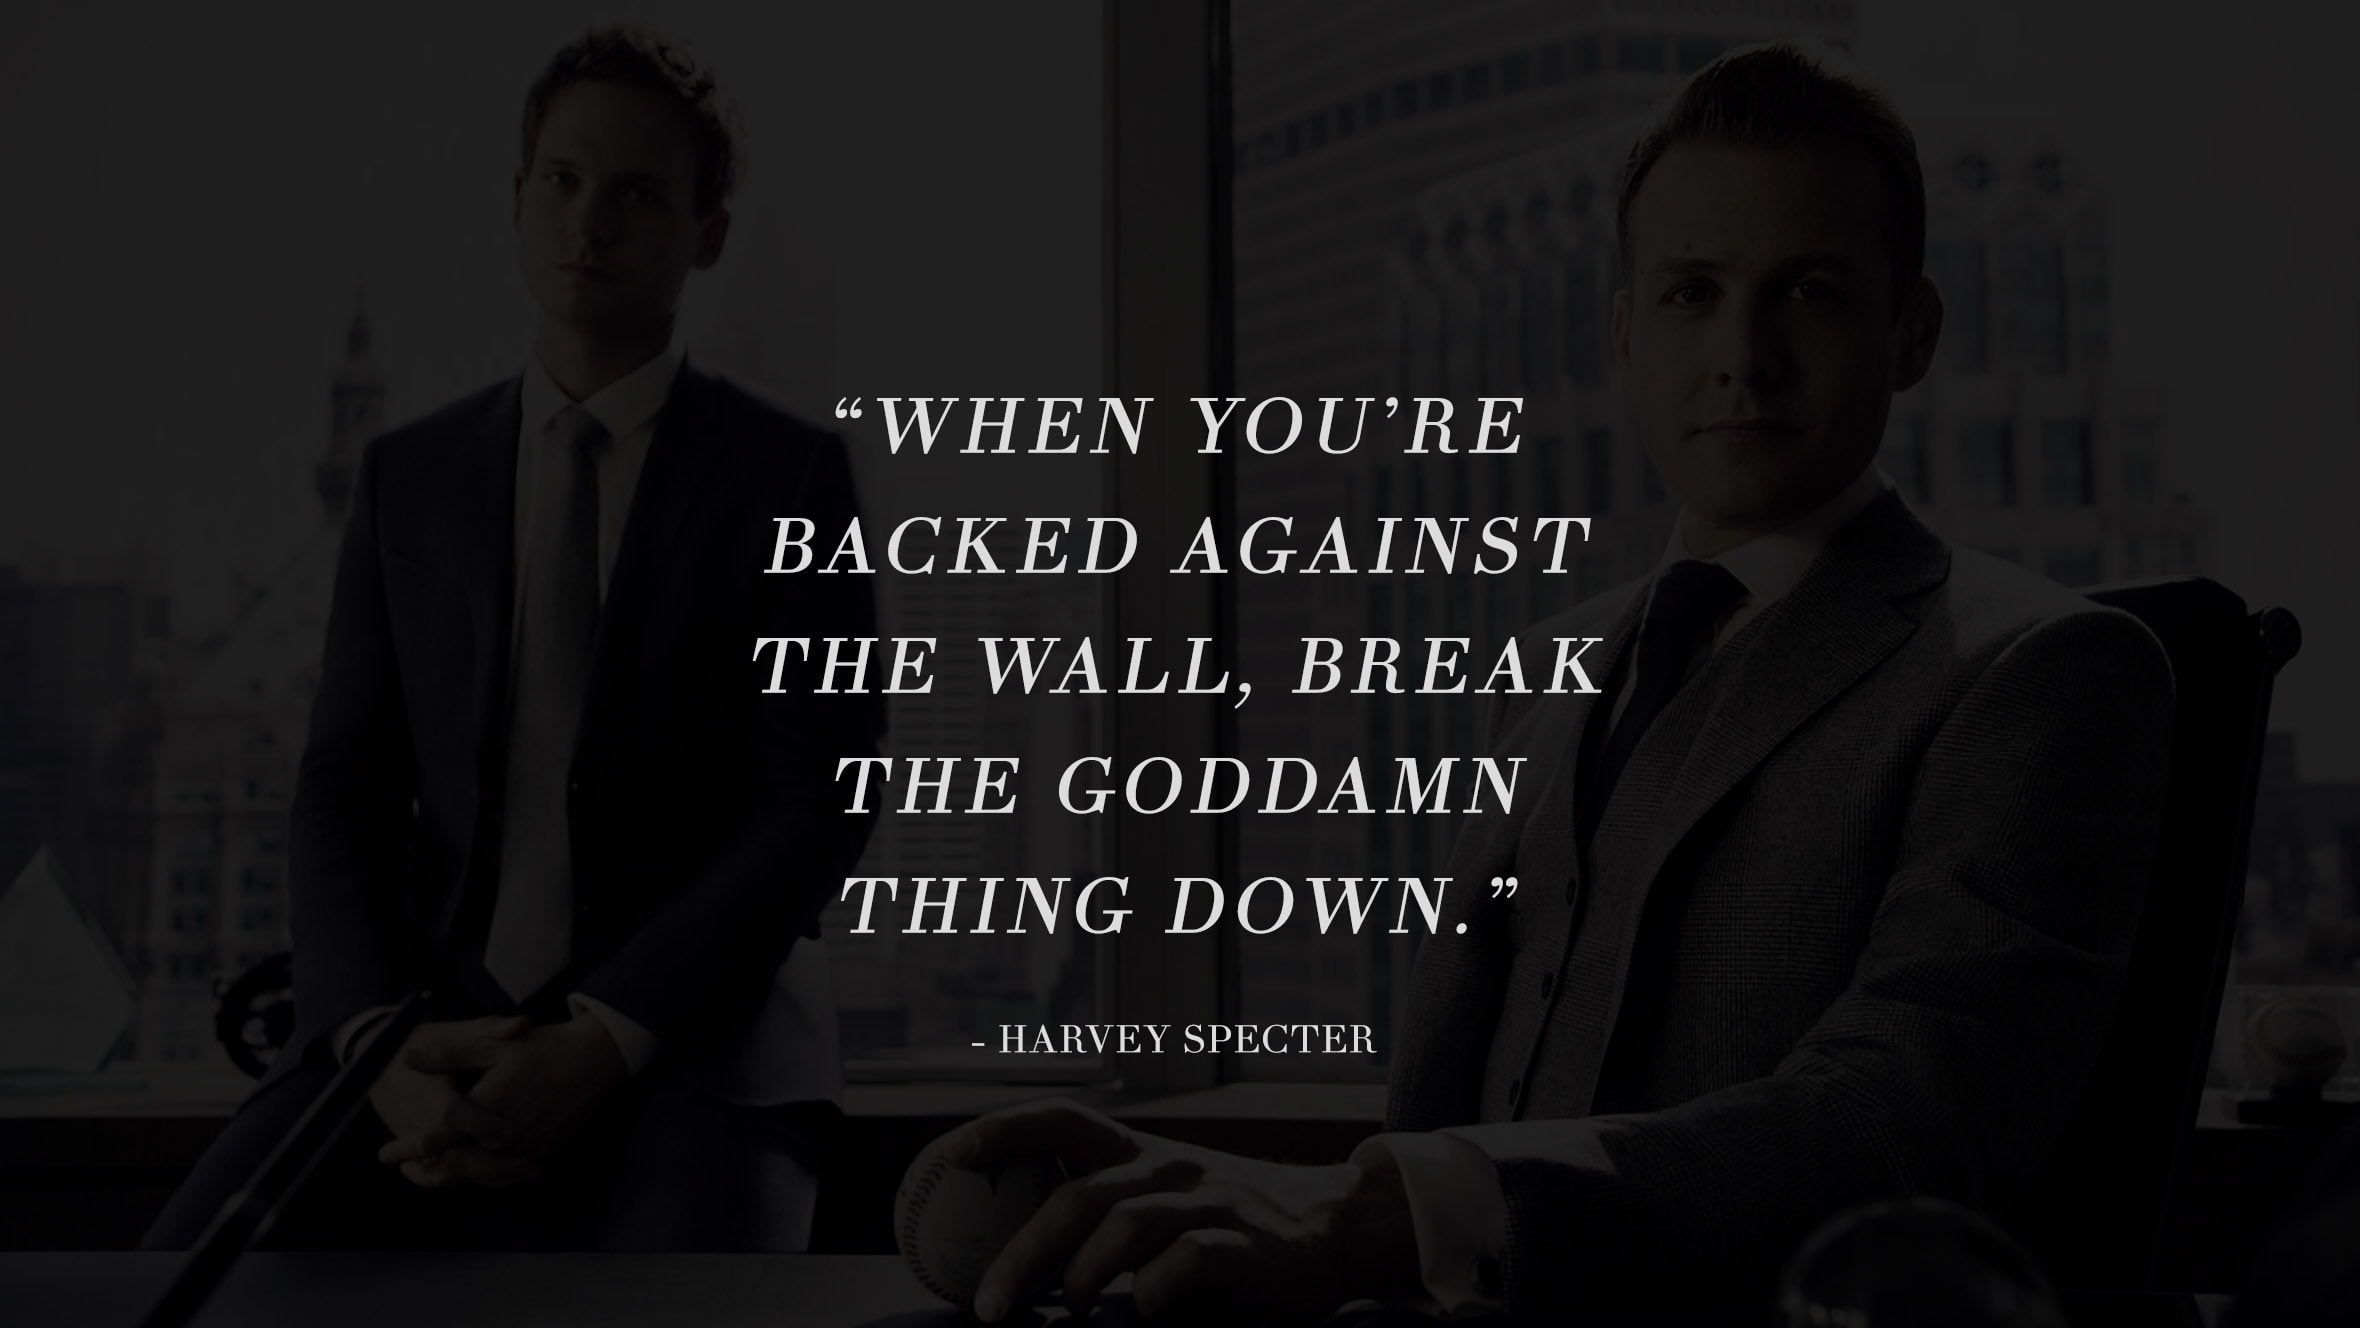 13 Highly Inspiring And Motivating Quotes From The Successful TV Series Suits 1